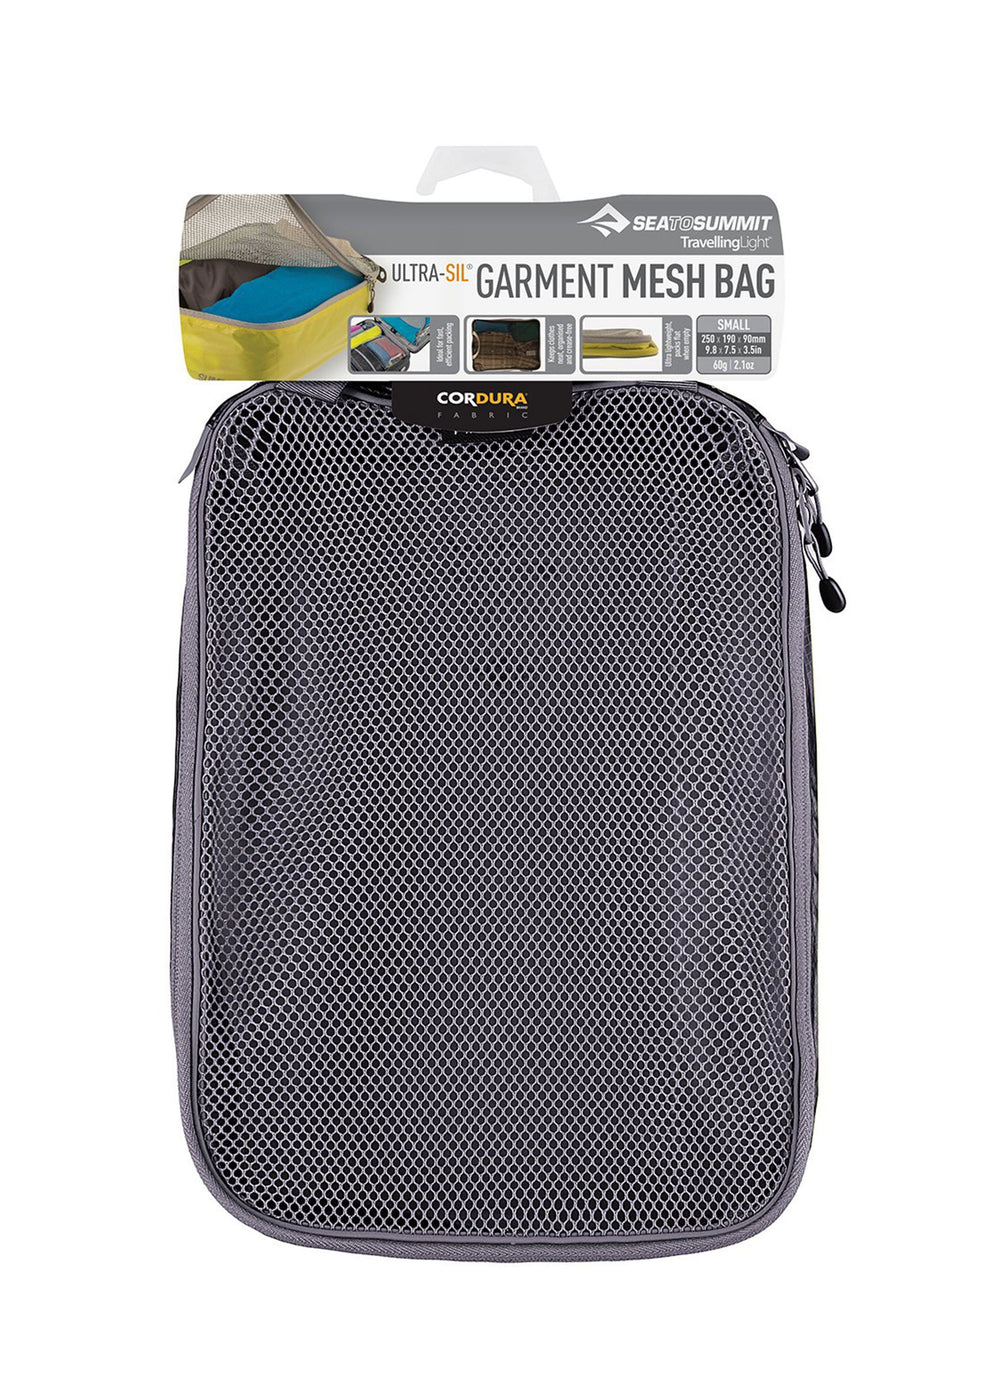 Sea to Summit Travelling Light Ultra-Sil Garment Mesh Bag